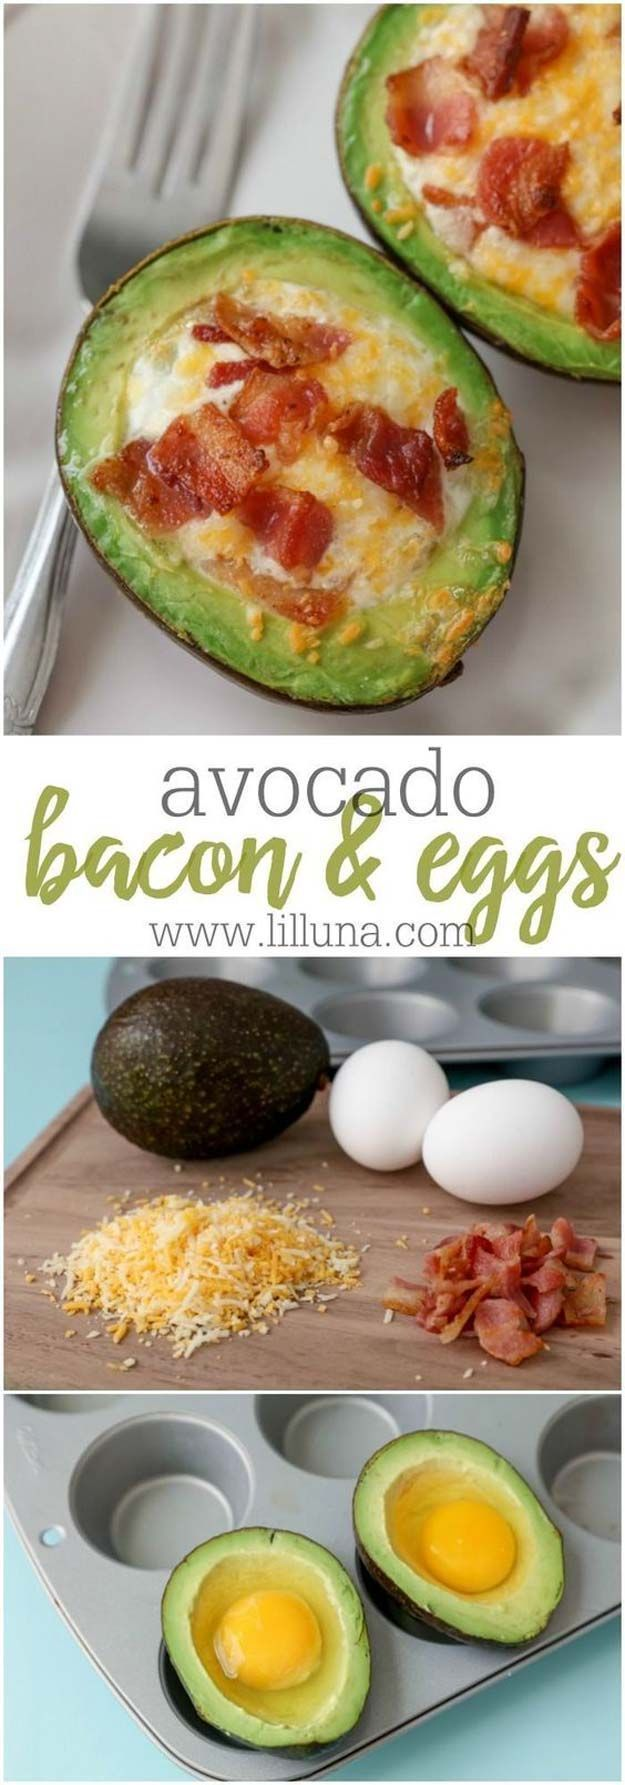 Healthy Avocado Recipes - Avocado Bacon and Eggs - Easy Clean Eating Recipes for Breakfast, Lunches, Dinner and even Desserts - Low Carb Vegetarian Snacks, Dip, Smothie Ideas and All Sorts of Diets - Get Your Fitness in Order with these awesome Paleo Deto paleo dinner vegetarian #vegetariandinnerrecipeslowcarb